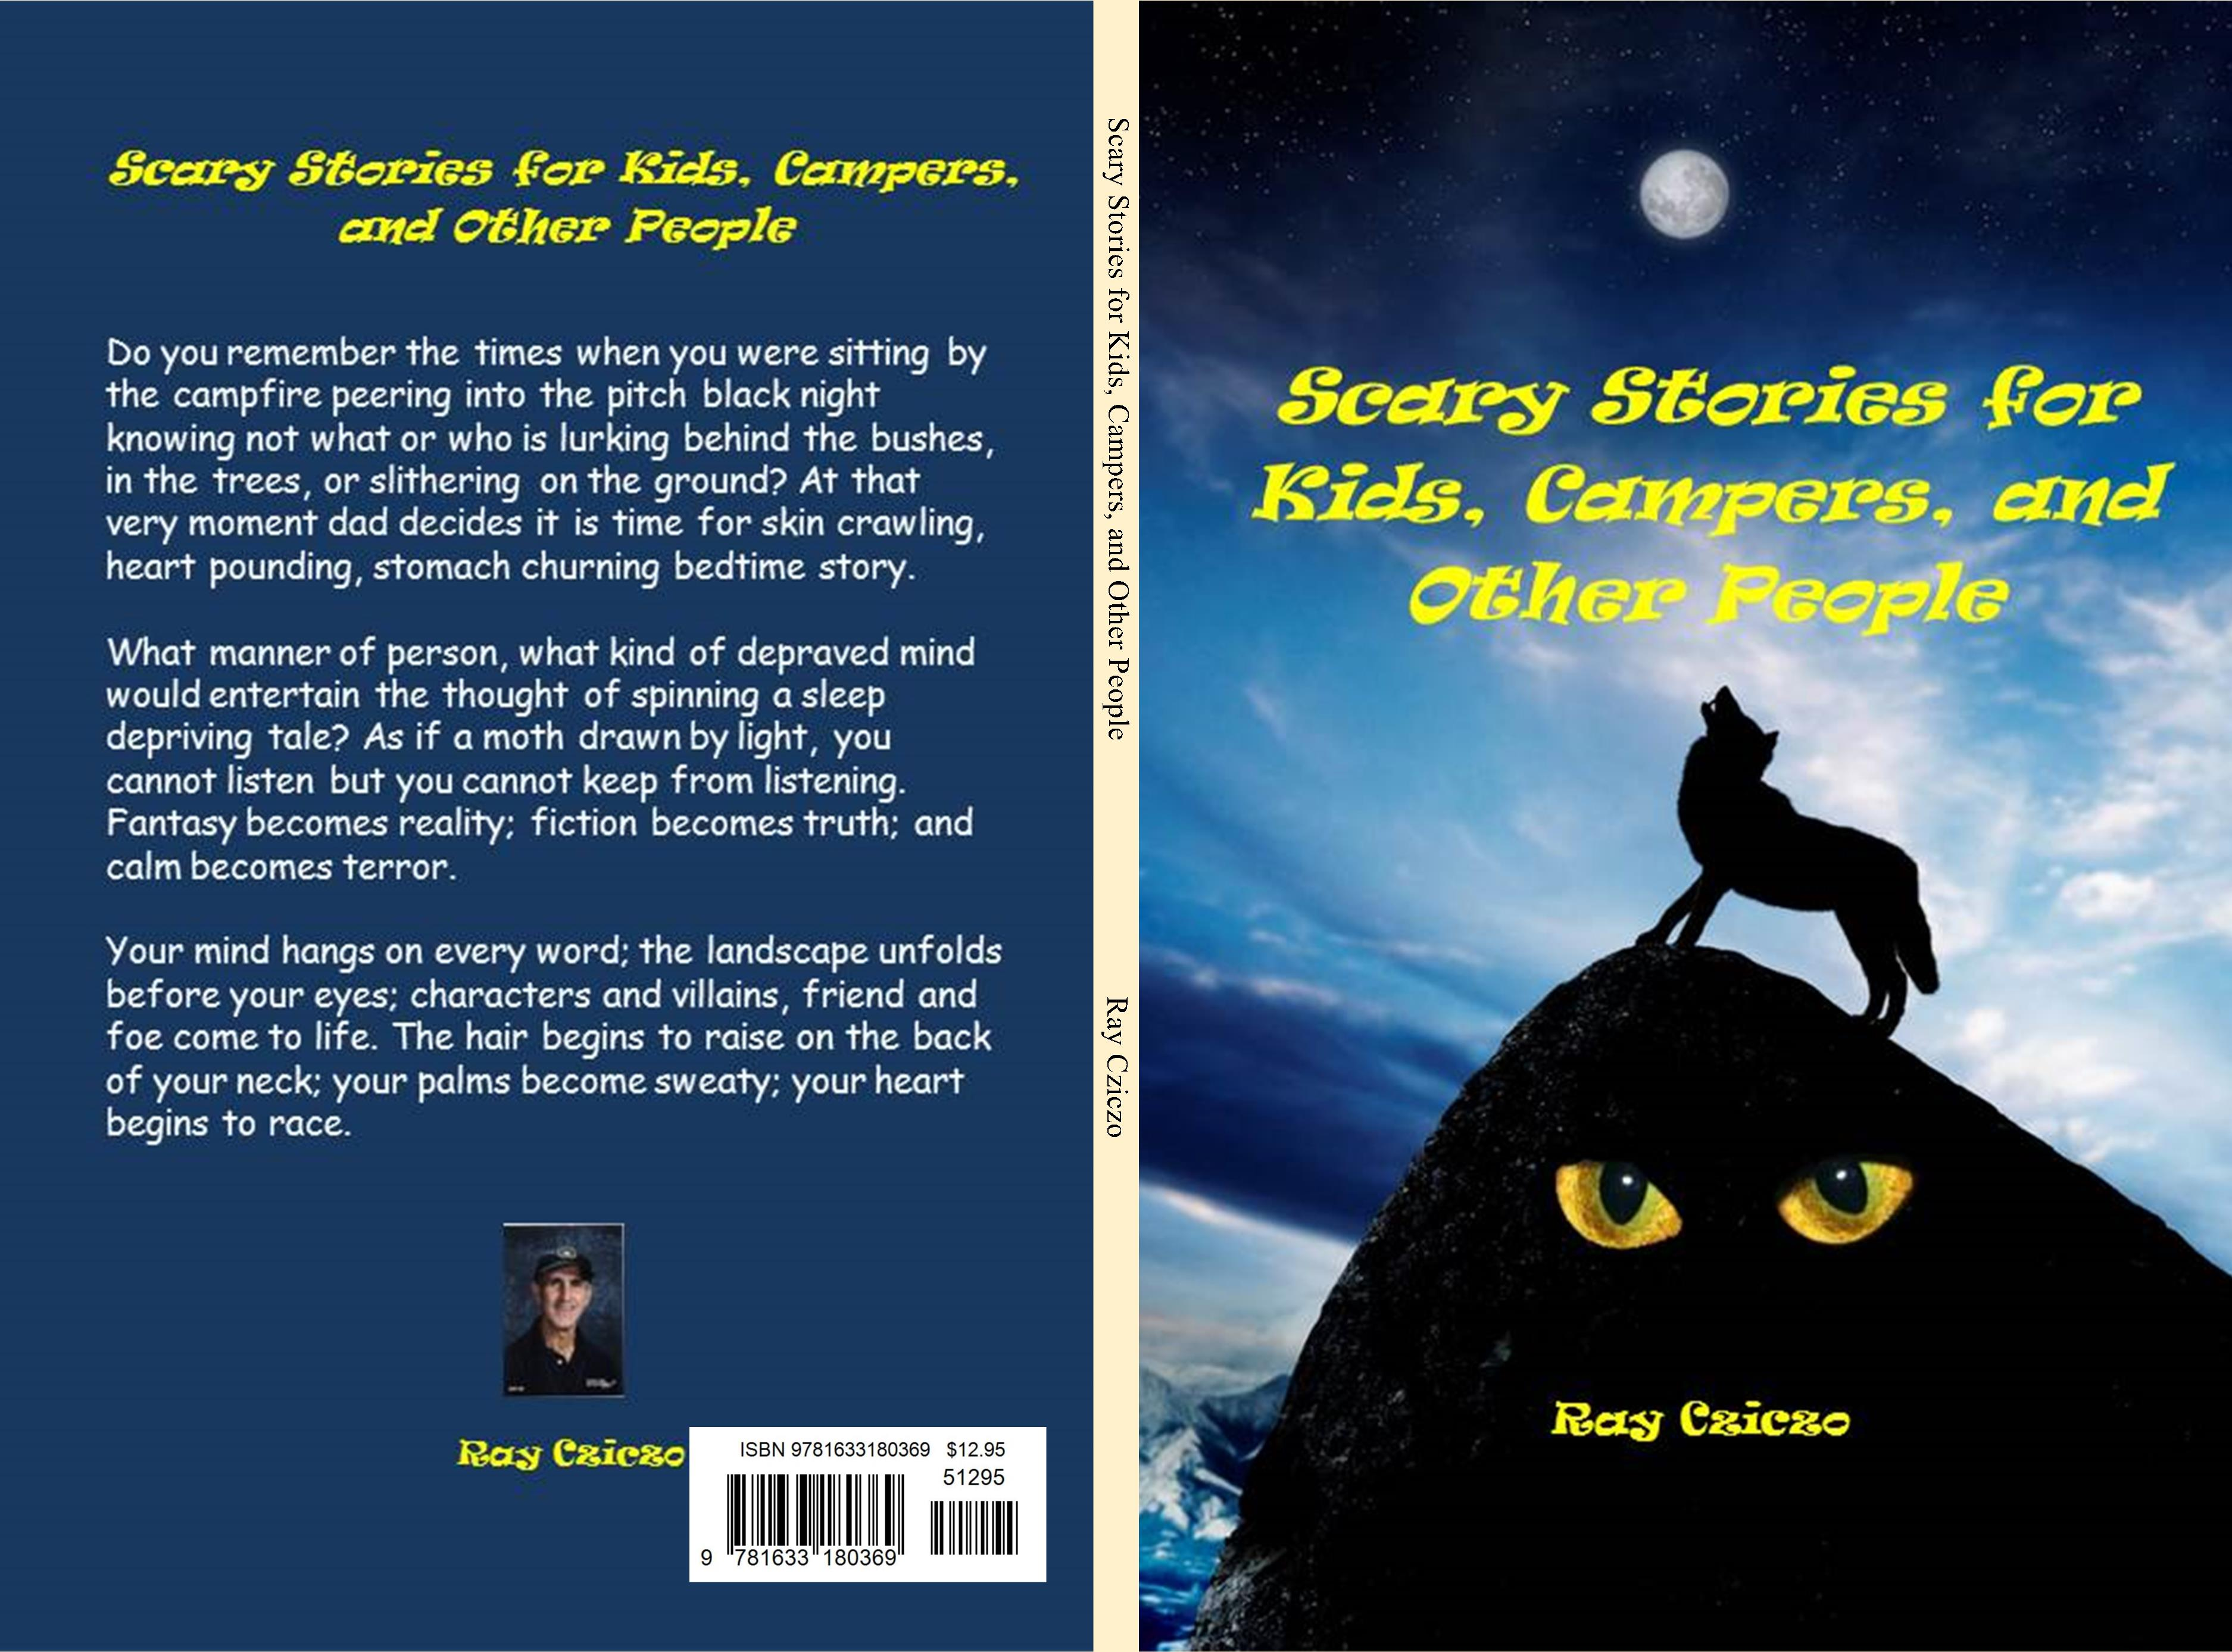 Scary Stories for Kids, Campers, and Other People cover image